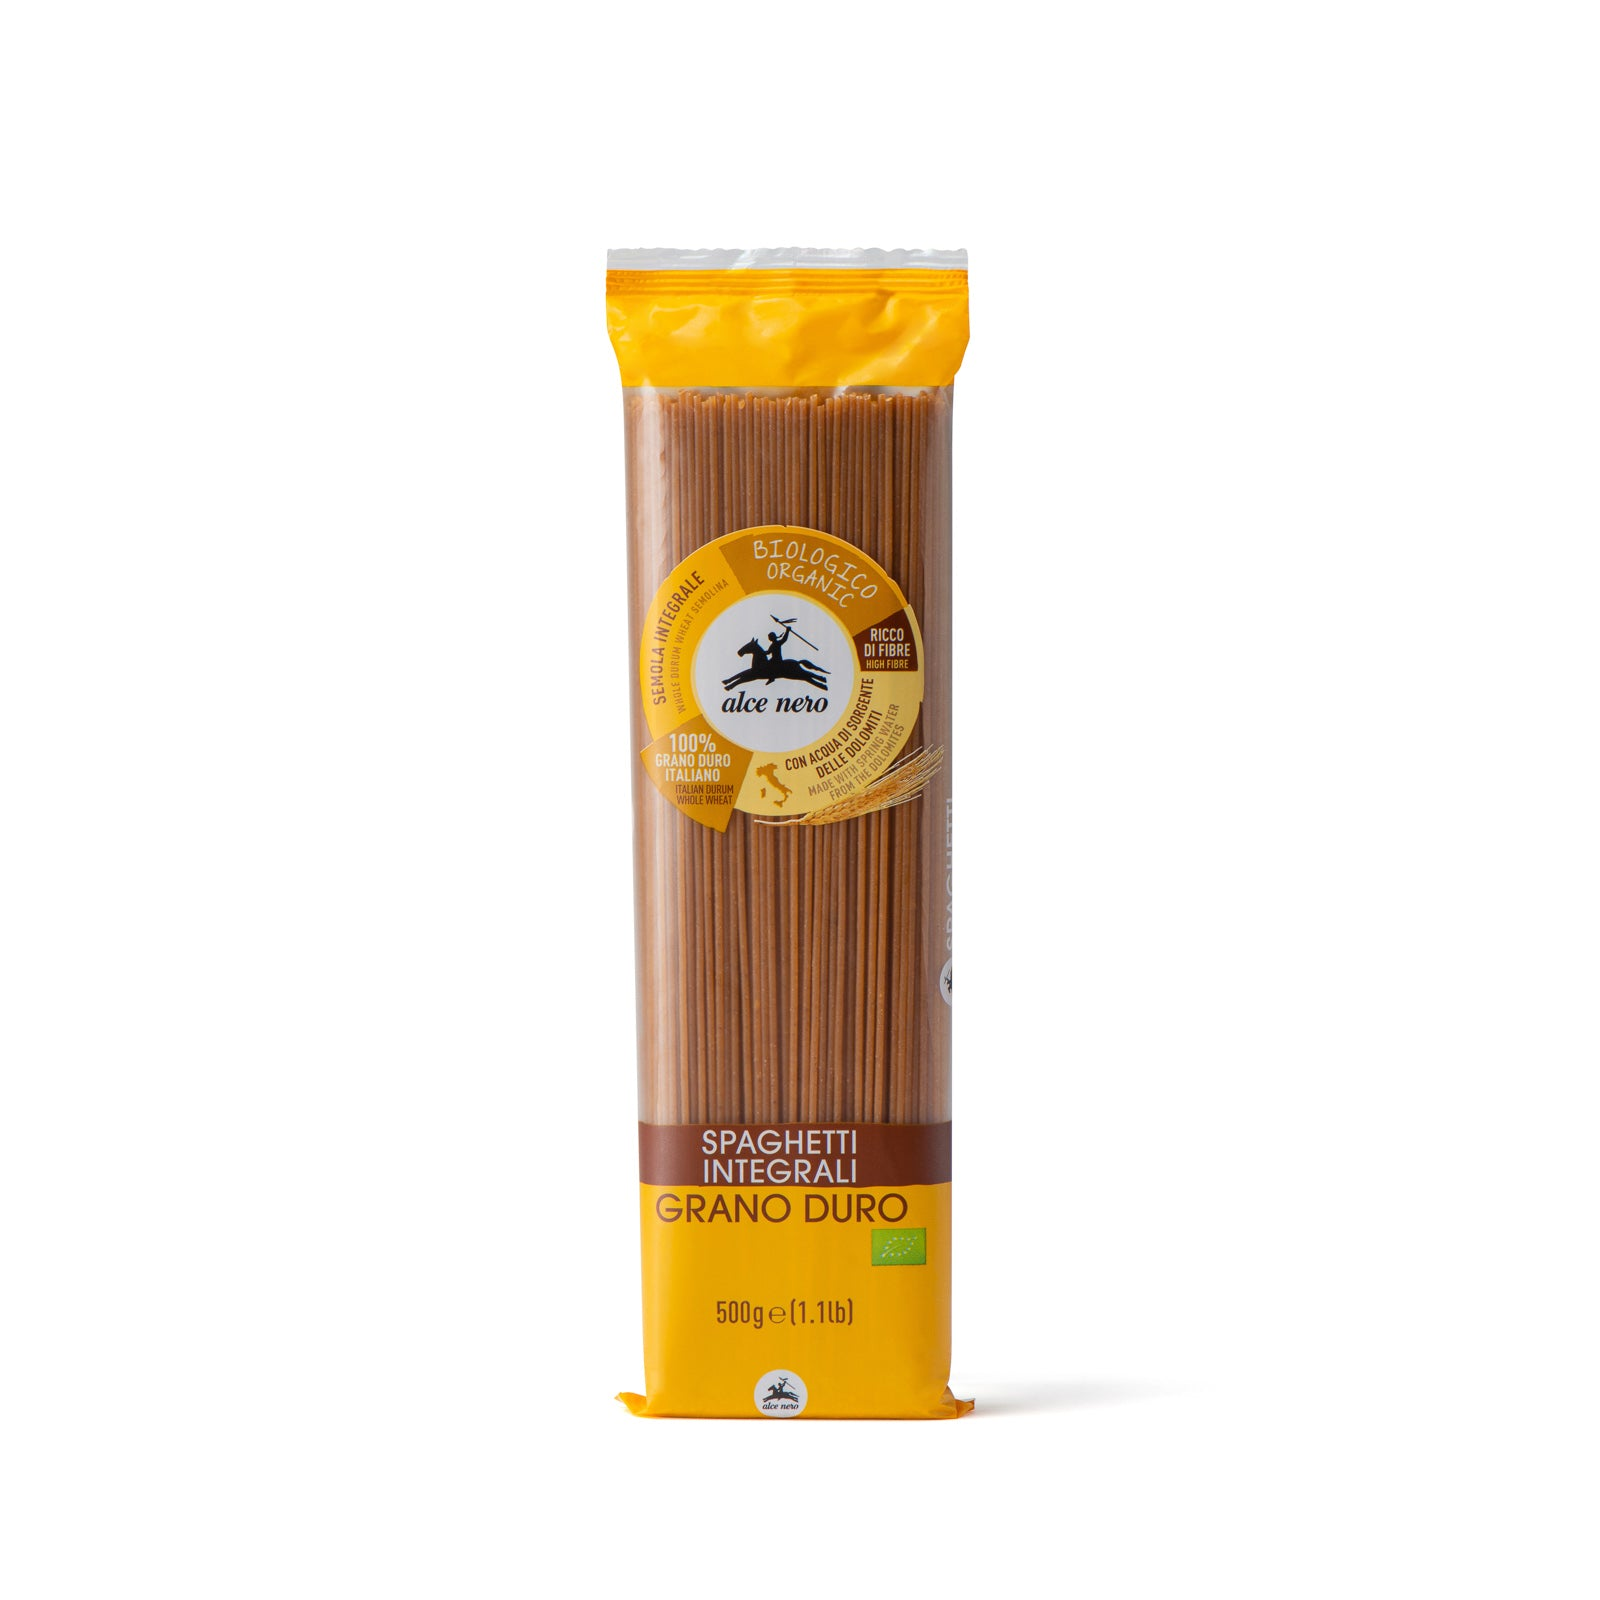 Organic wholemeal durum wheat spaghetti - PI610